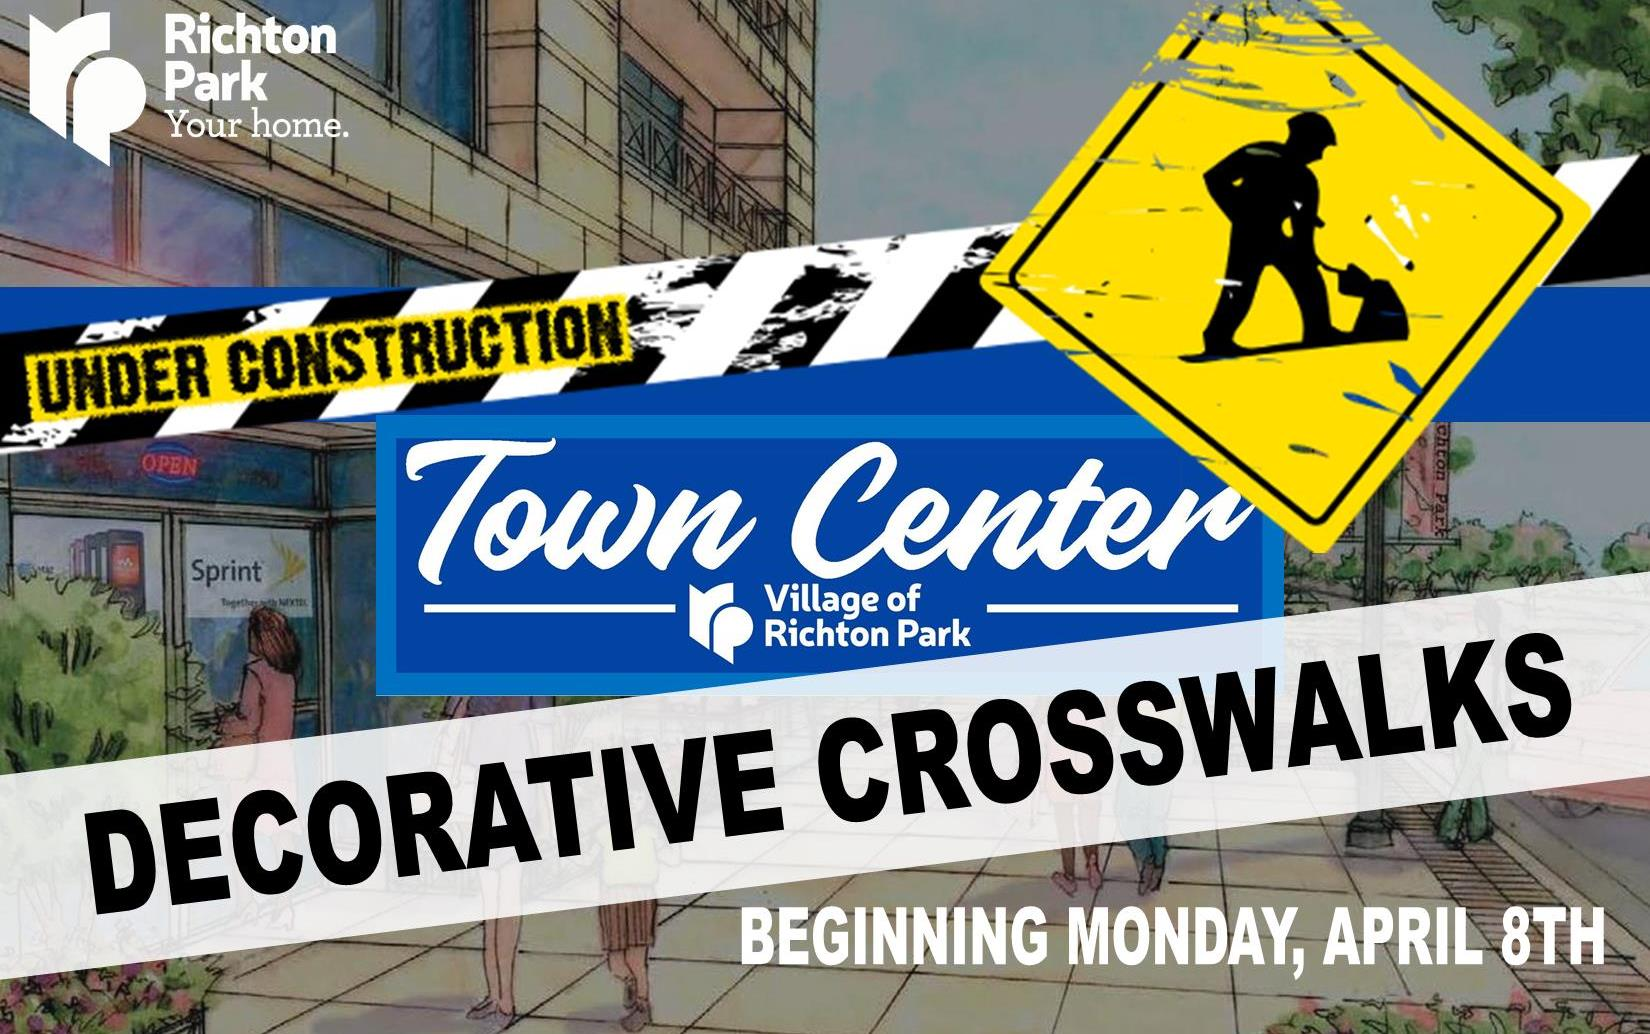 Under Construction - Decorative Crosswalks